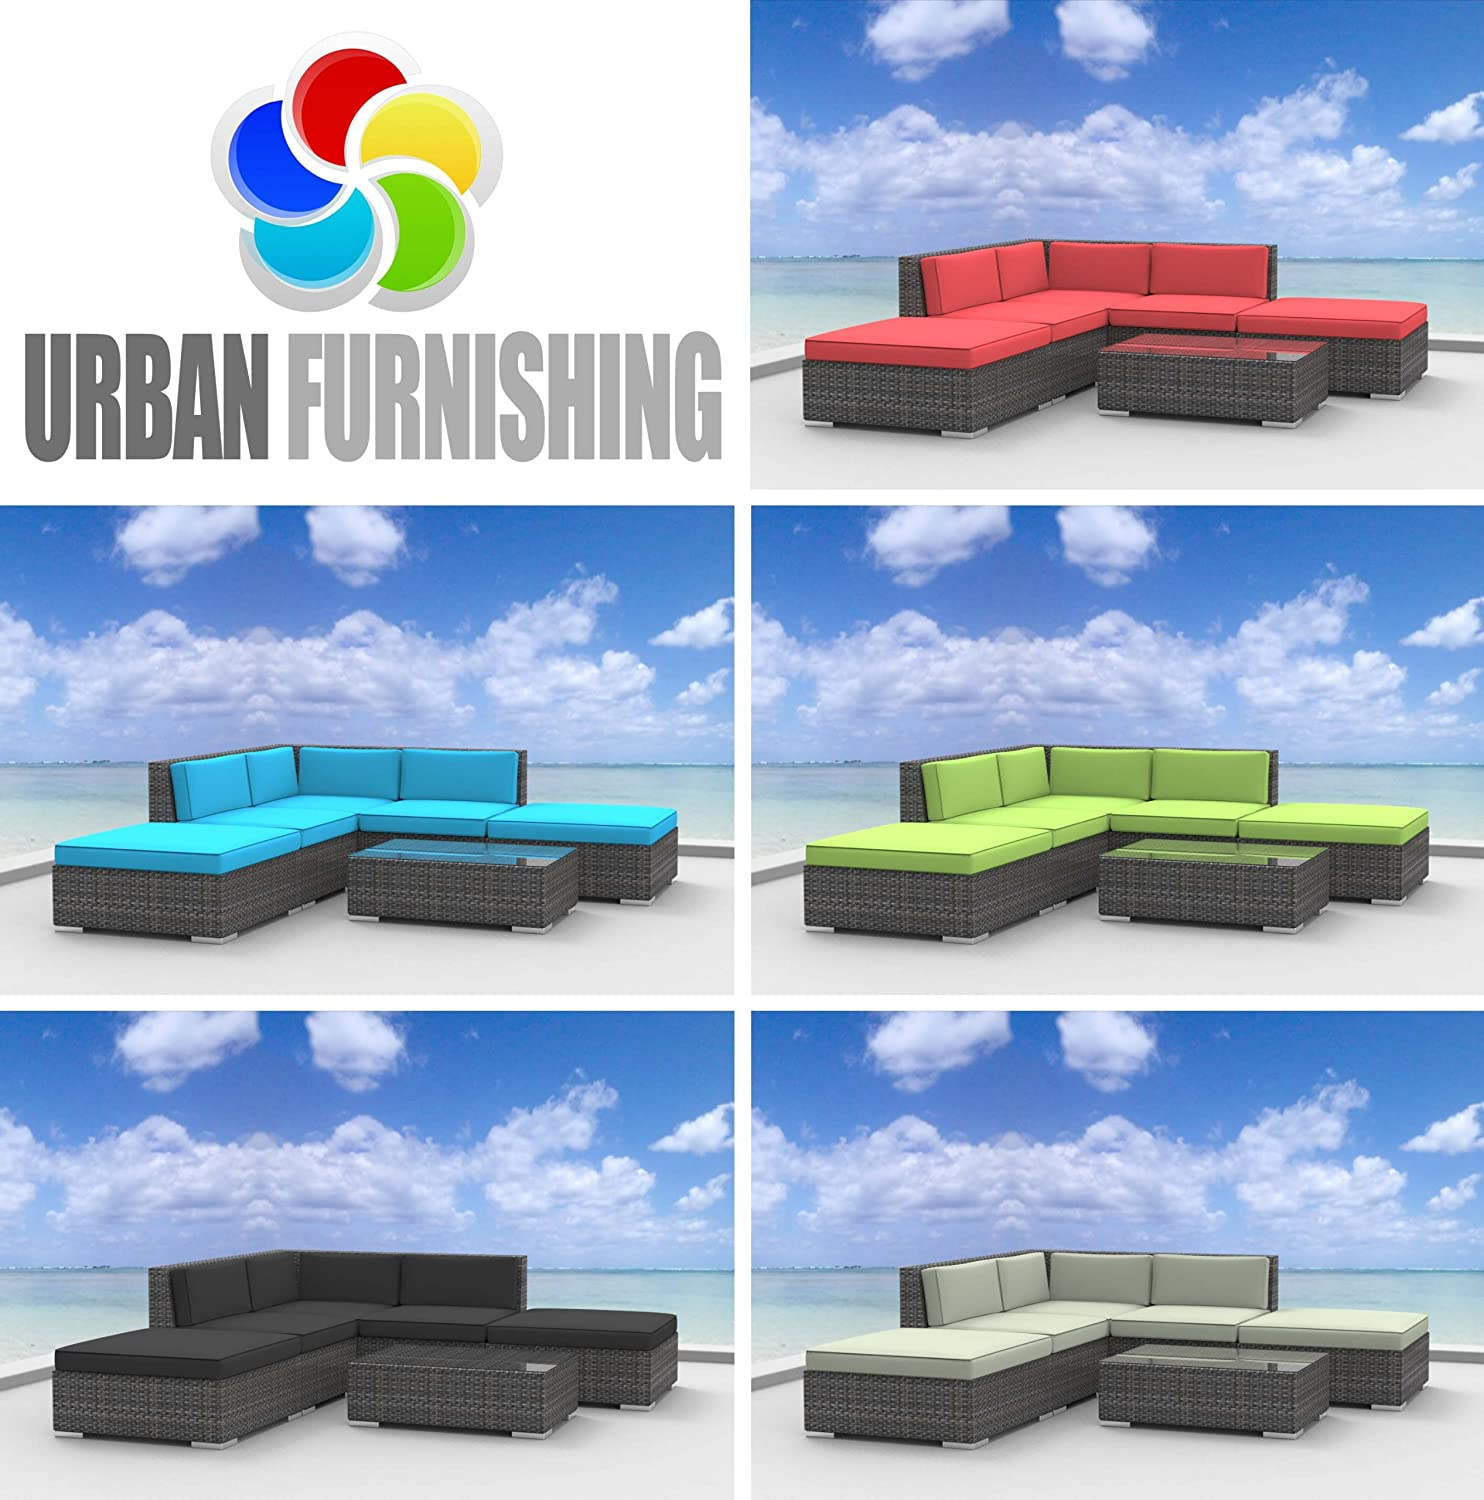 UrbanFurnishing.net 6a-Bali-Limegreen 6 Piece Modern Patio Furniture Sofa Sectional Couch Set